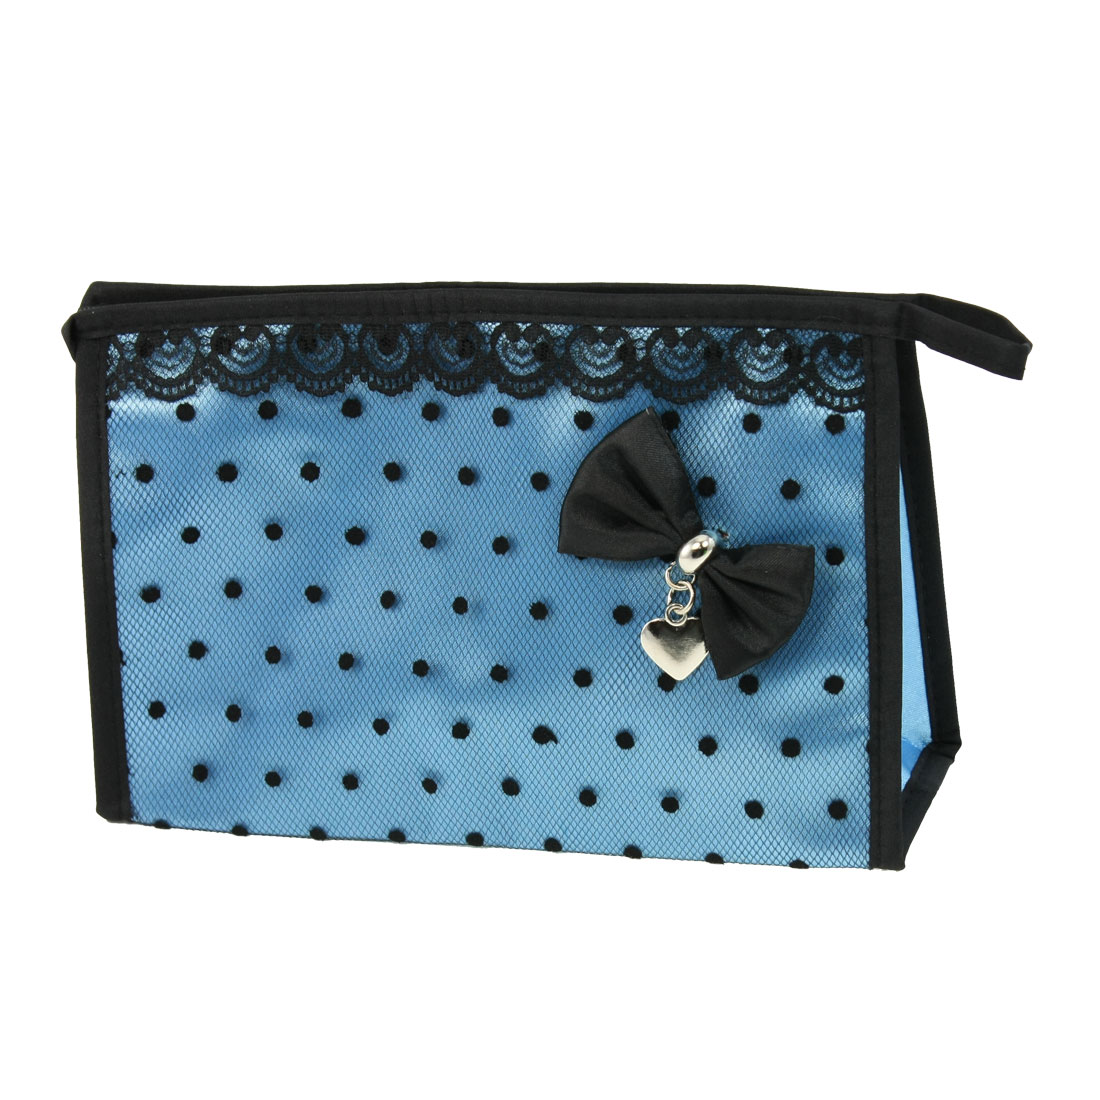 Zip up Closure Black Dots Mesh Lace Makeup Cosmetic Organizer Hand Bag Blue